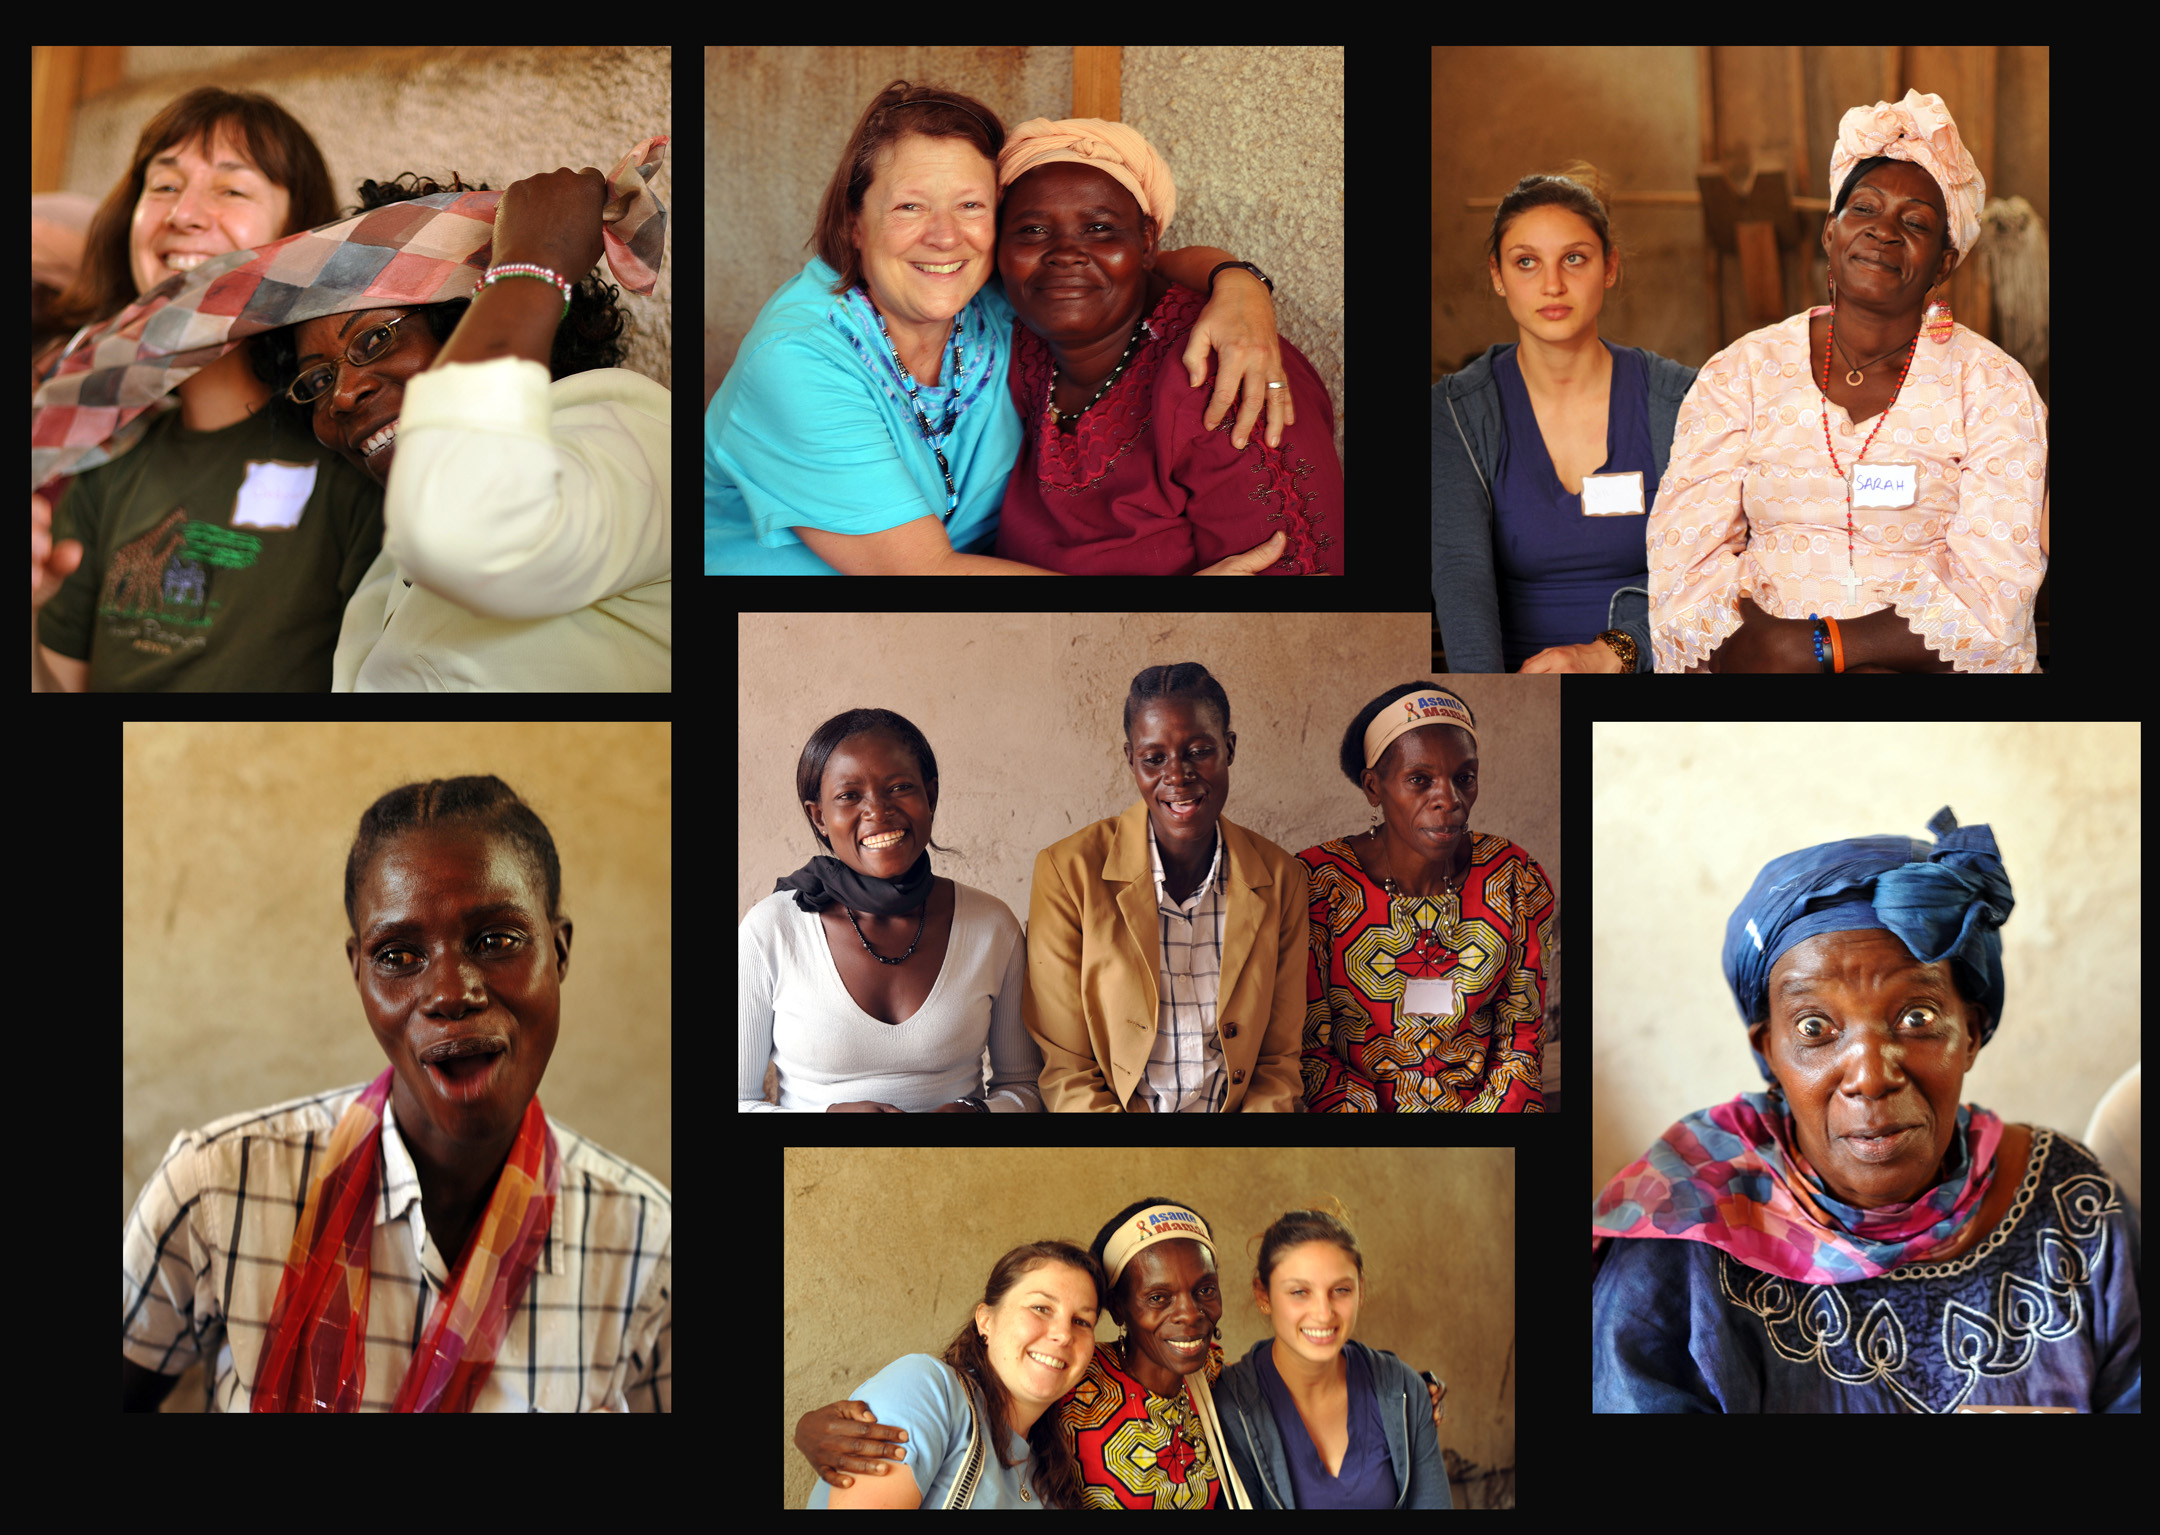 Visit with the Vision Self Help Group of Dandora